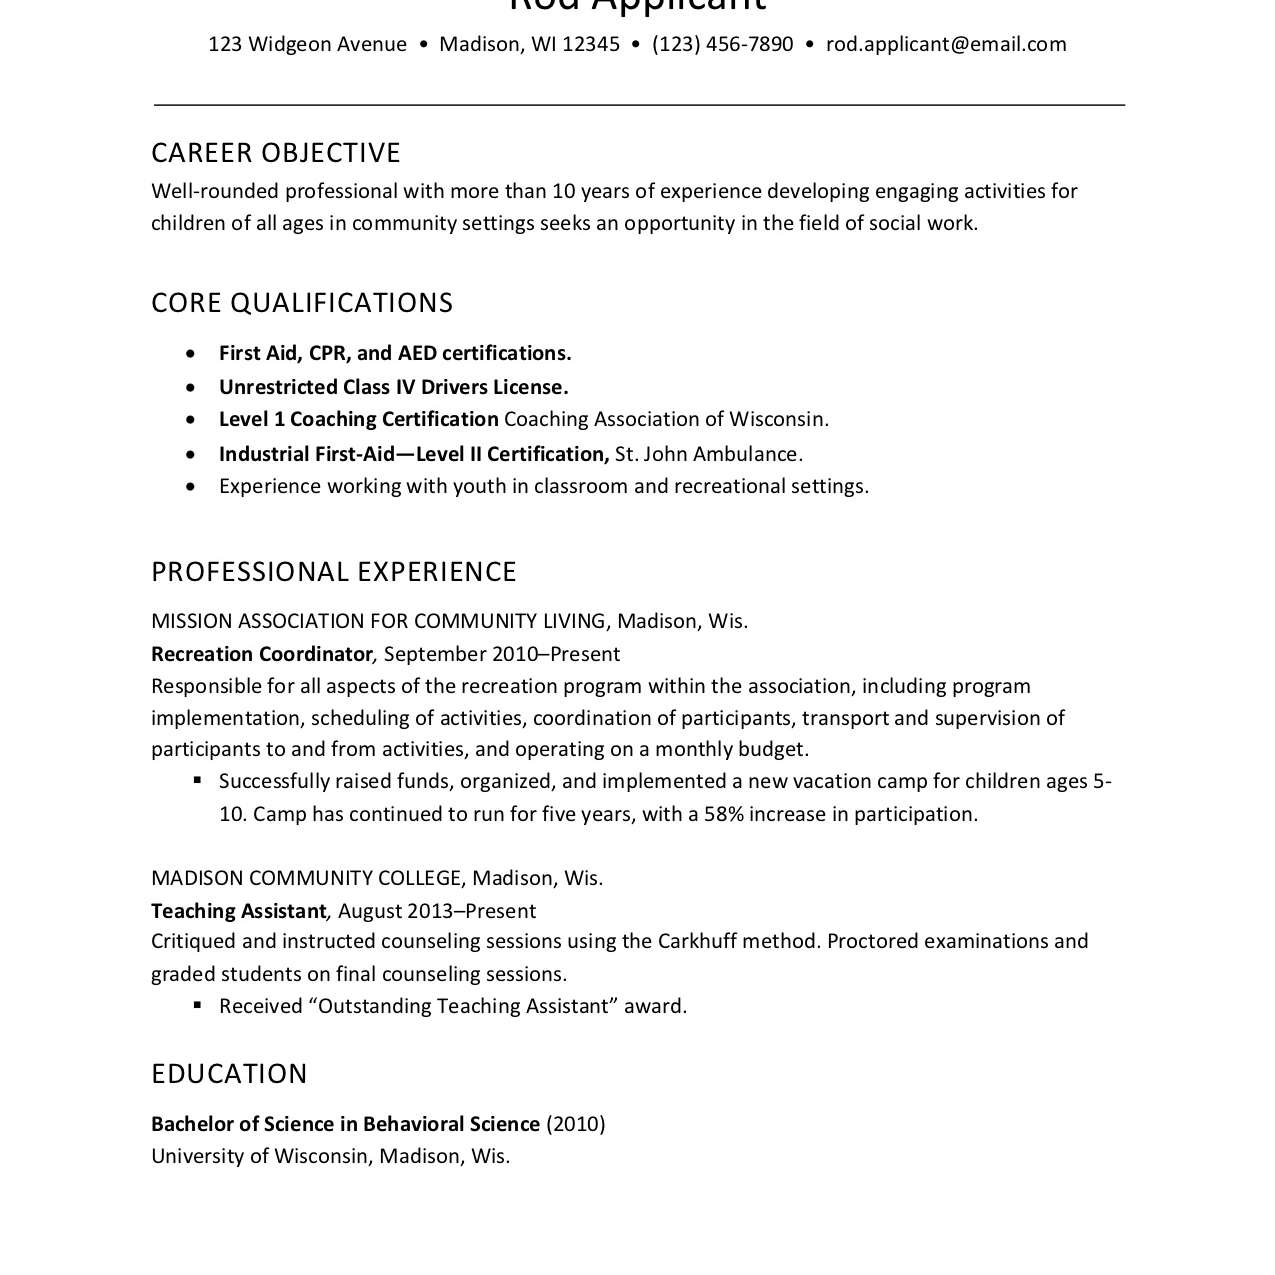 resume example for childcare social services worker child care examples travel agent Resume Child Care Resume Examples